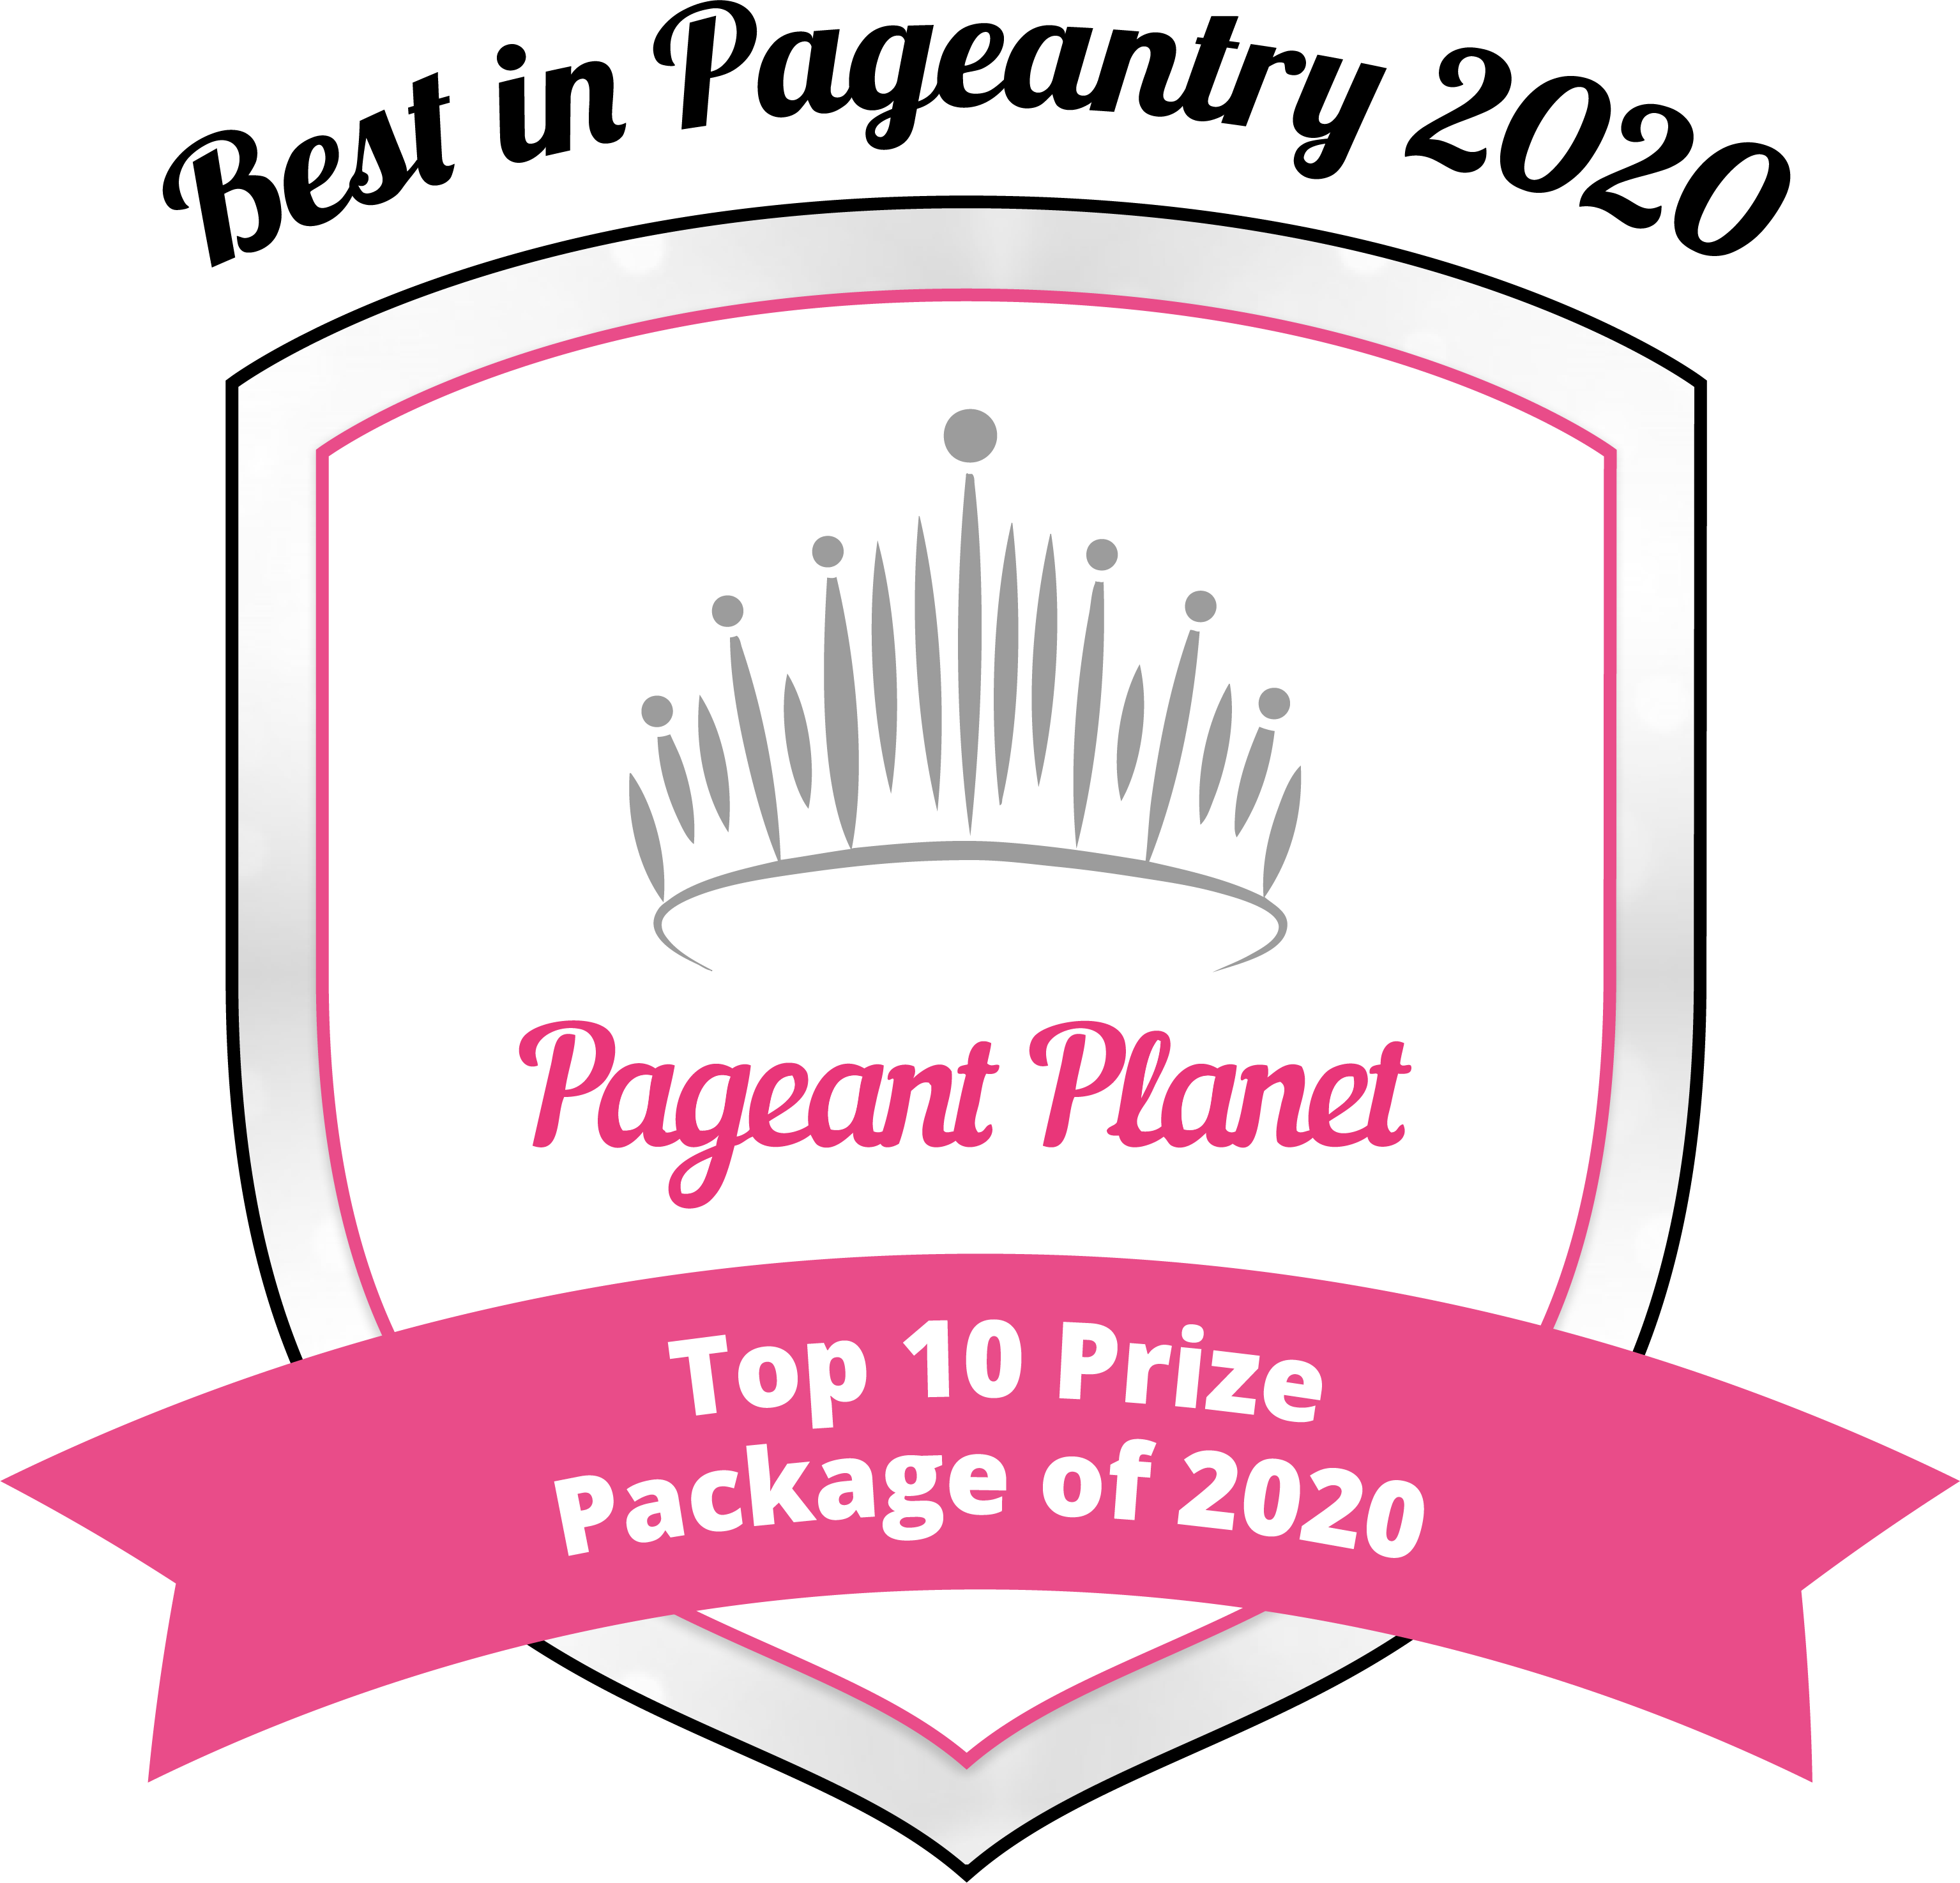 Top 10 Best Pageant Prize Packages of 2020